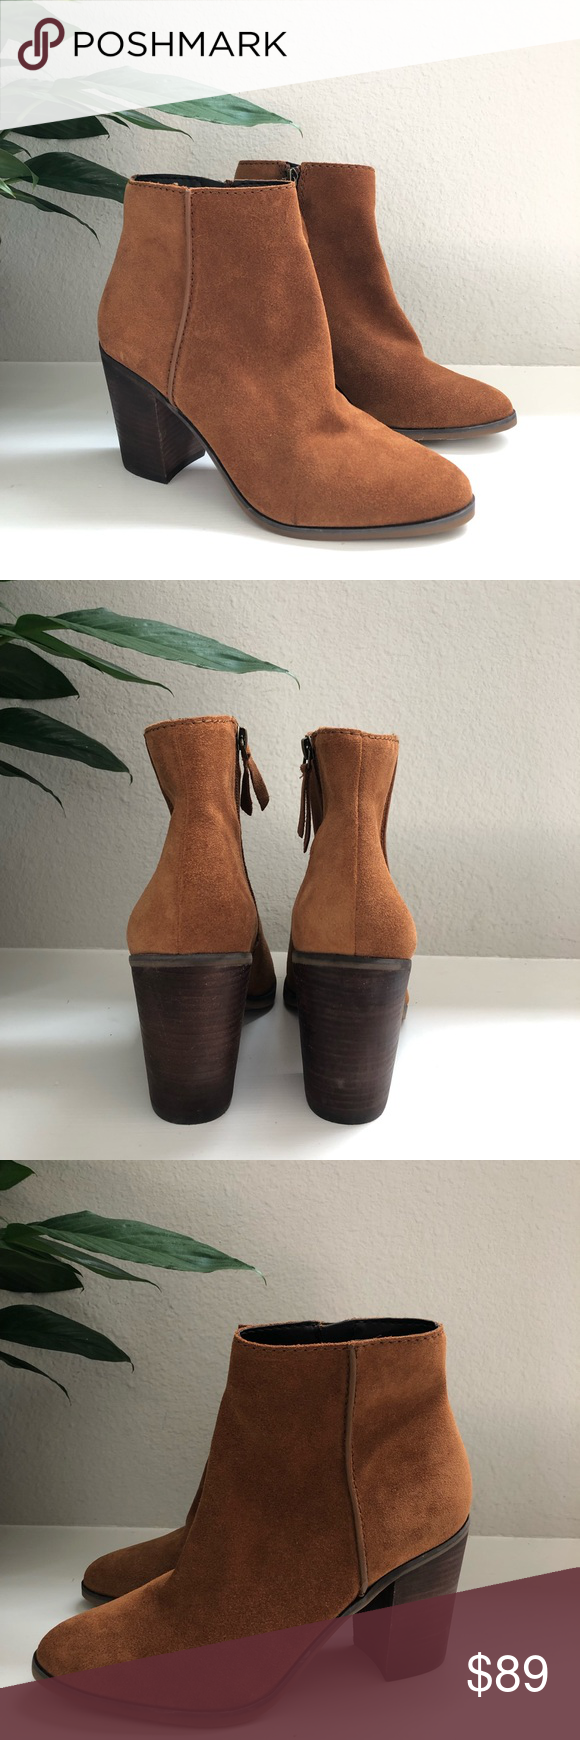 ALDO SUEDE ANKLE BOOTIES A cool zippered ankle boot made for cool weather from Aldo , this block heel bootiesare perfect with pencil skirts and skinny jeans .    Features: Ankle boot Round toe Block heel Zipper closure Cognac color  New without Box Aldo Shoes Ankle Boots & Booties #skinnyjeansandankleboots ALDO SUEDE ANKLE BOOTIES A cool zippered ankle boot made for cool weather from Aldo , this block heel bootiesare perfect with pencil skirts and skinny jeans .    Features: Ankle boot Round toe #skinnyjeansandankleboots